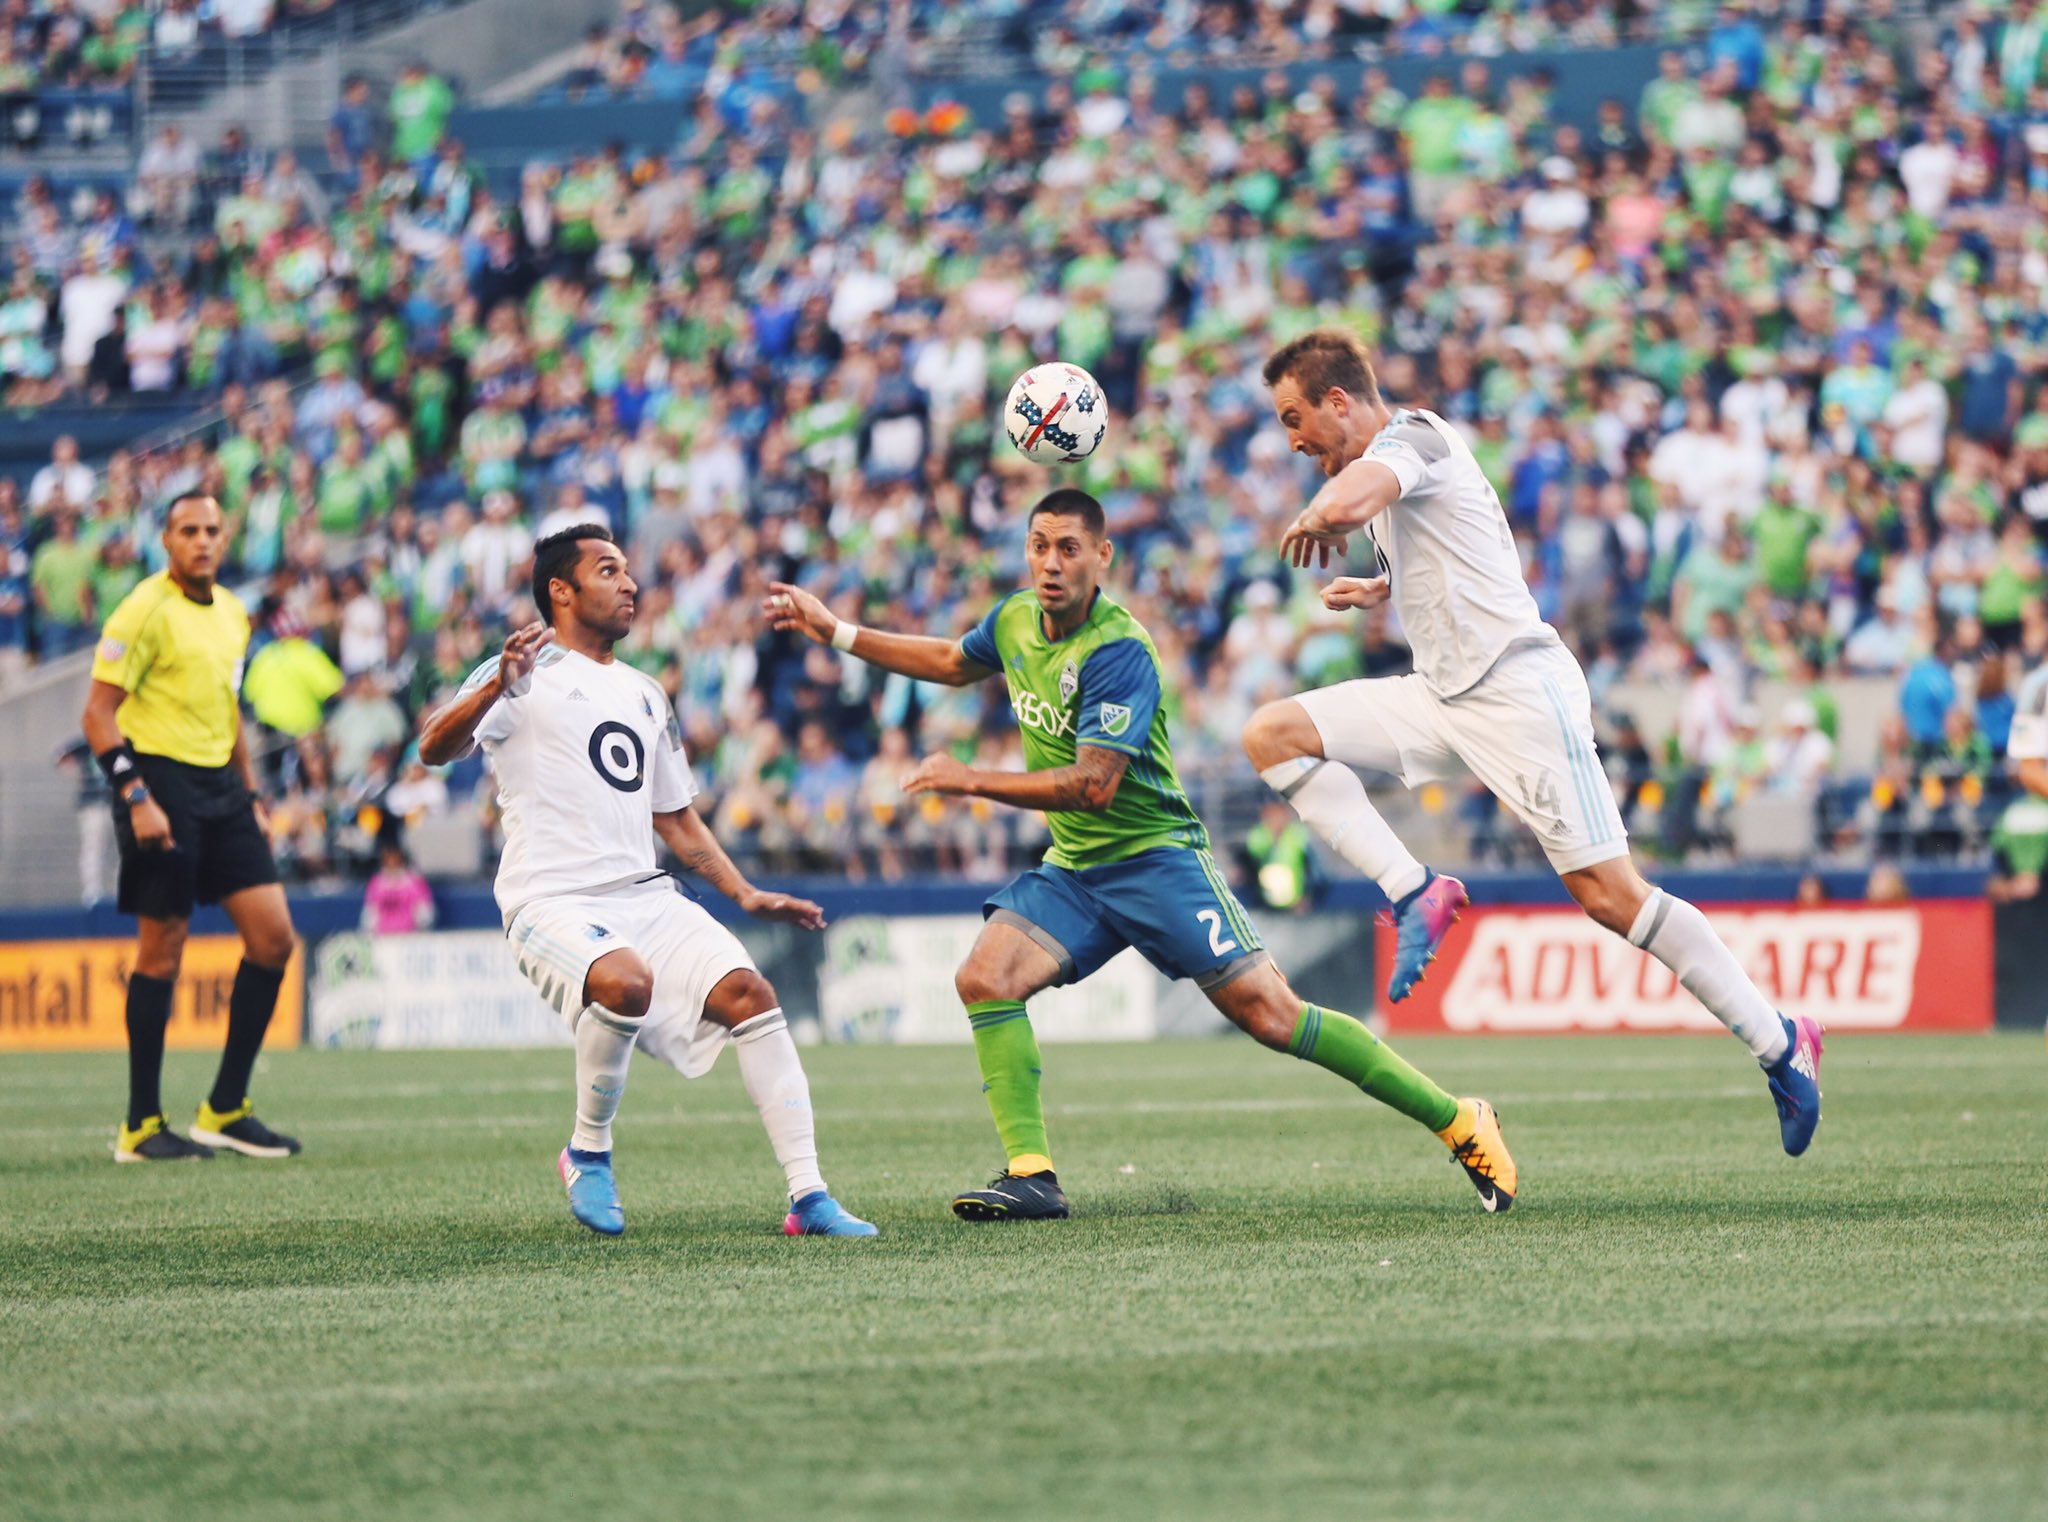 RT @SoundersFC: Just over 10 minutes plus stoppage time remaining in #SEAvMIN. We're all square at 1-1. https://t.co/LZ6YMso9k0